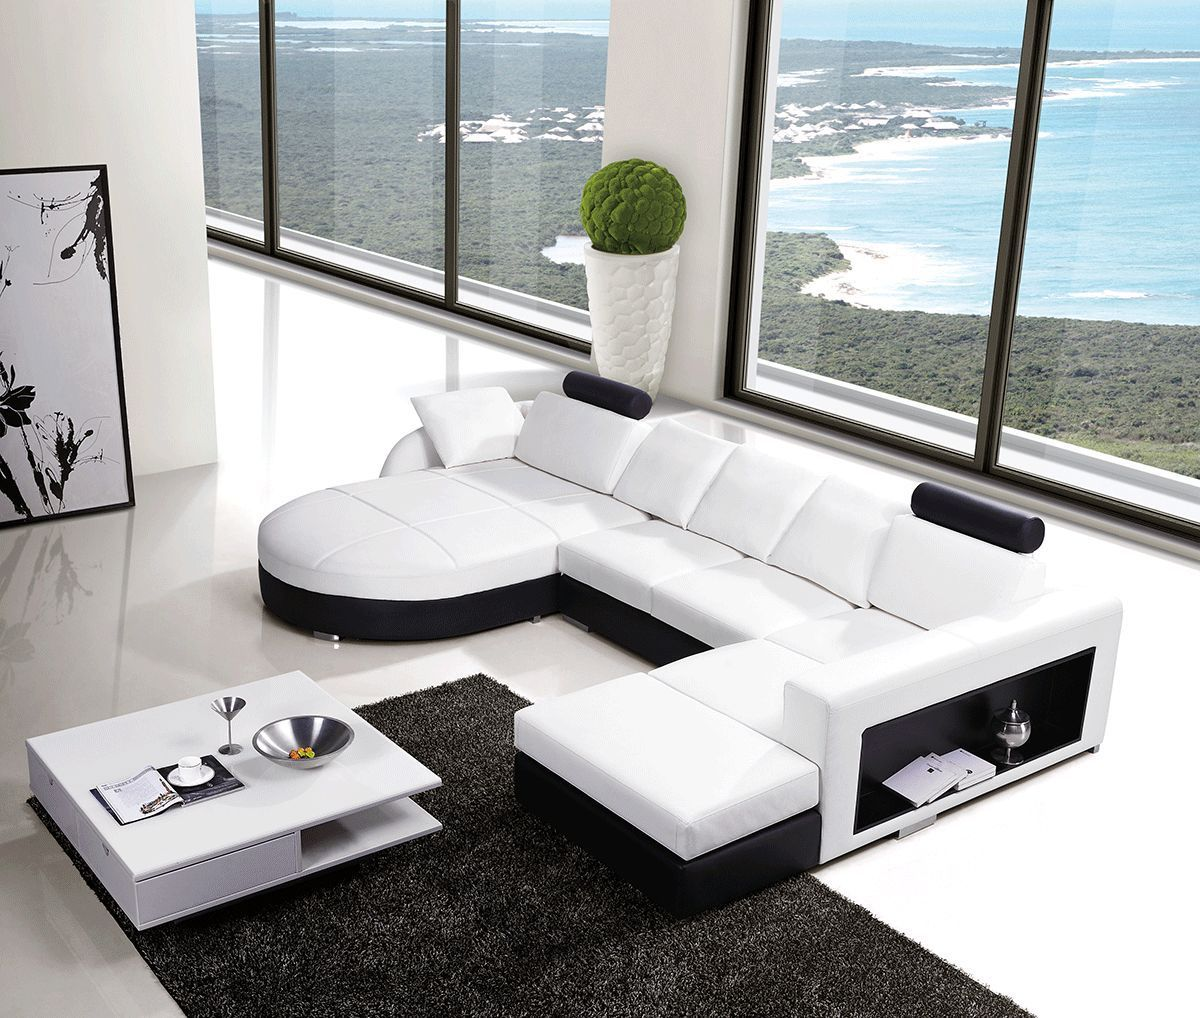 Divani Casa   Modern White/Black Leather Sectional Sofa In Home U0026 Garden,  Furniture, Sofas, Loveseats U0026 Chaises